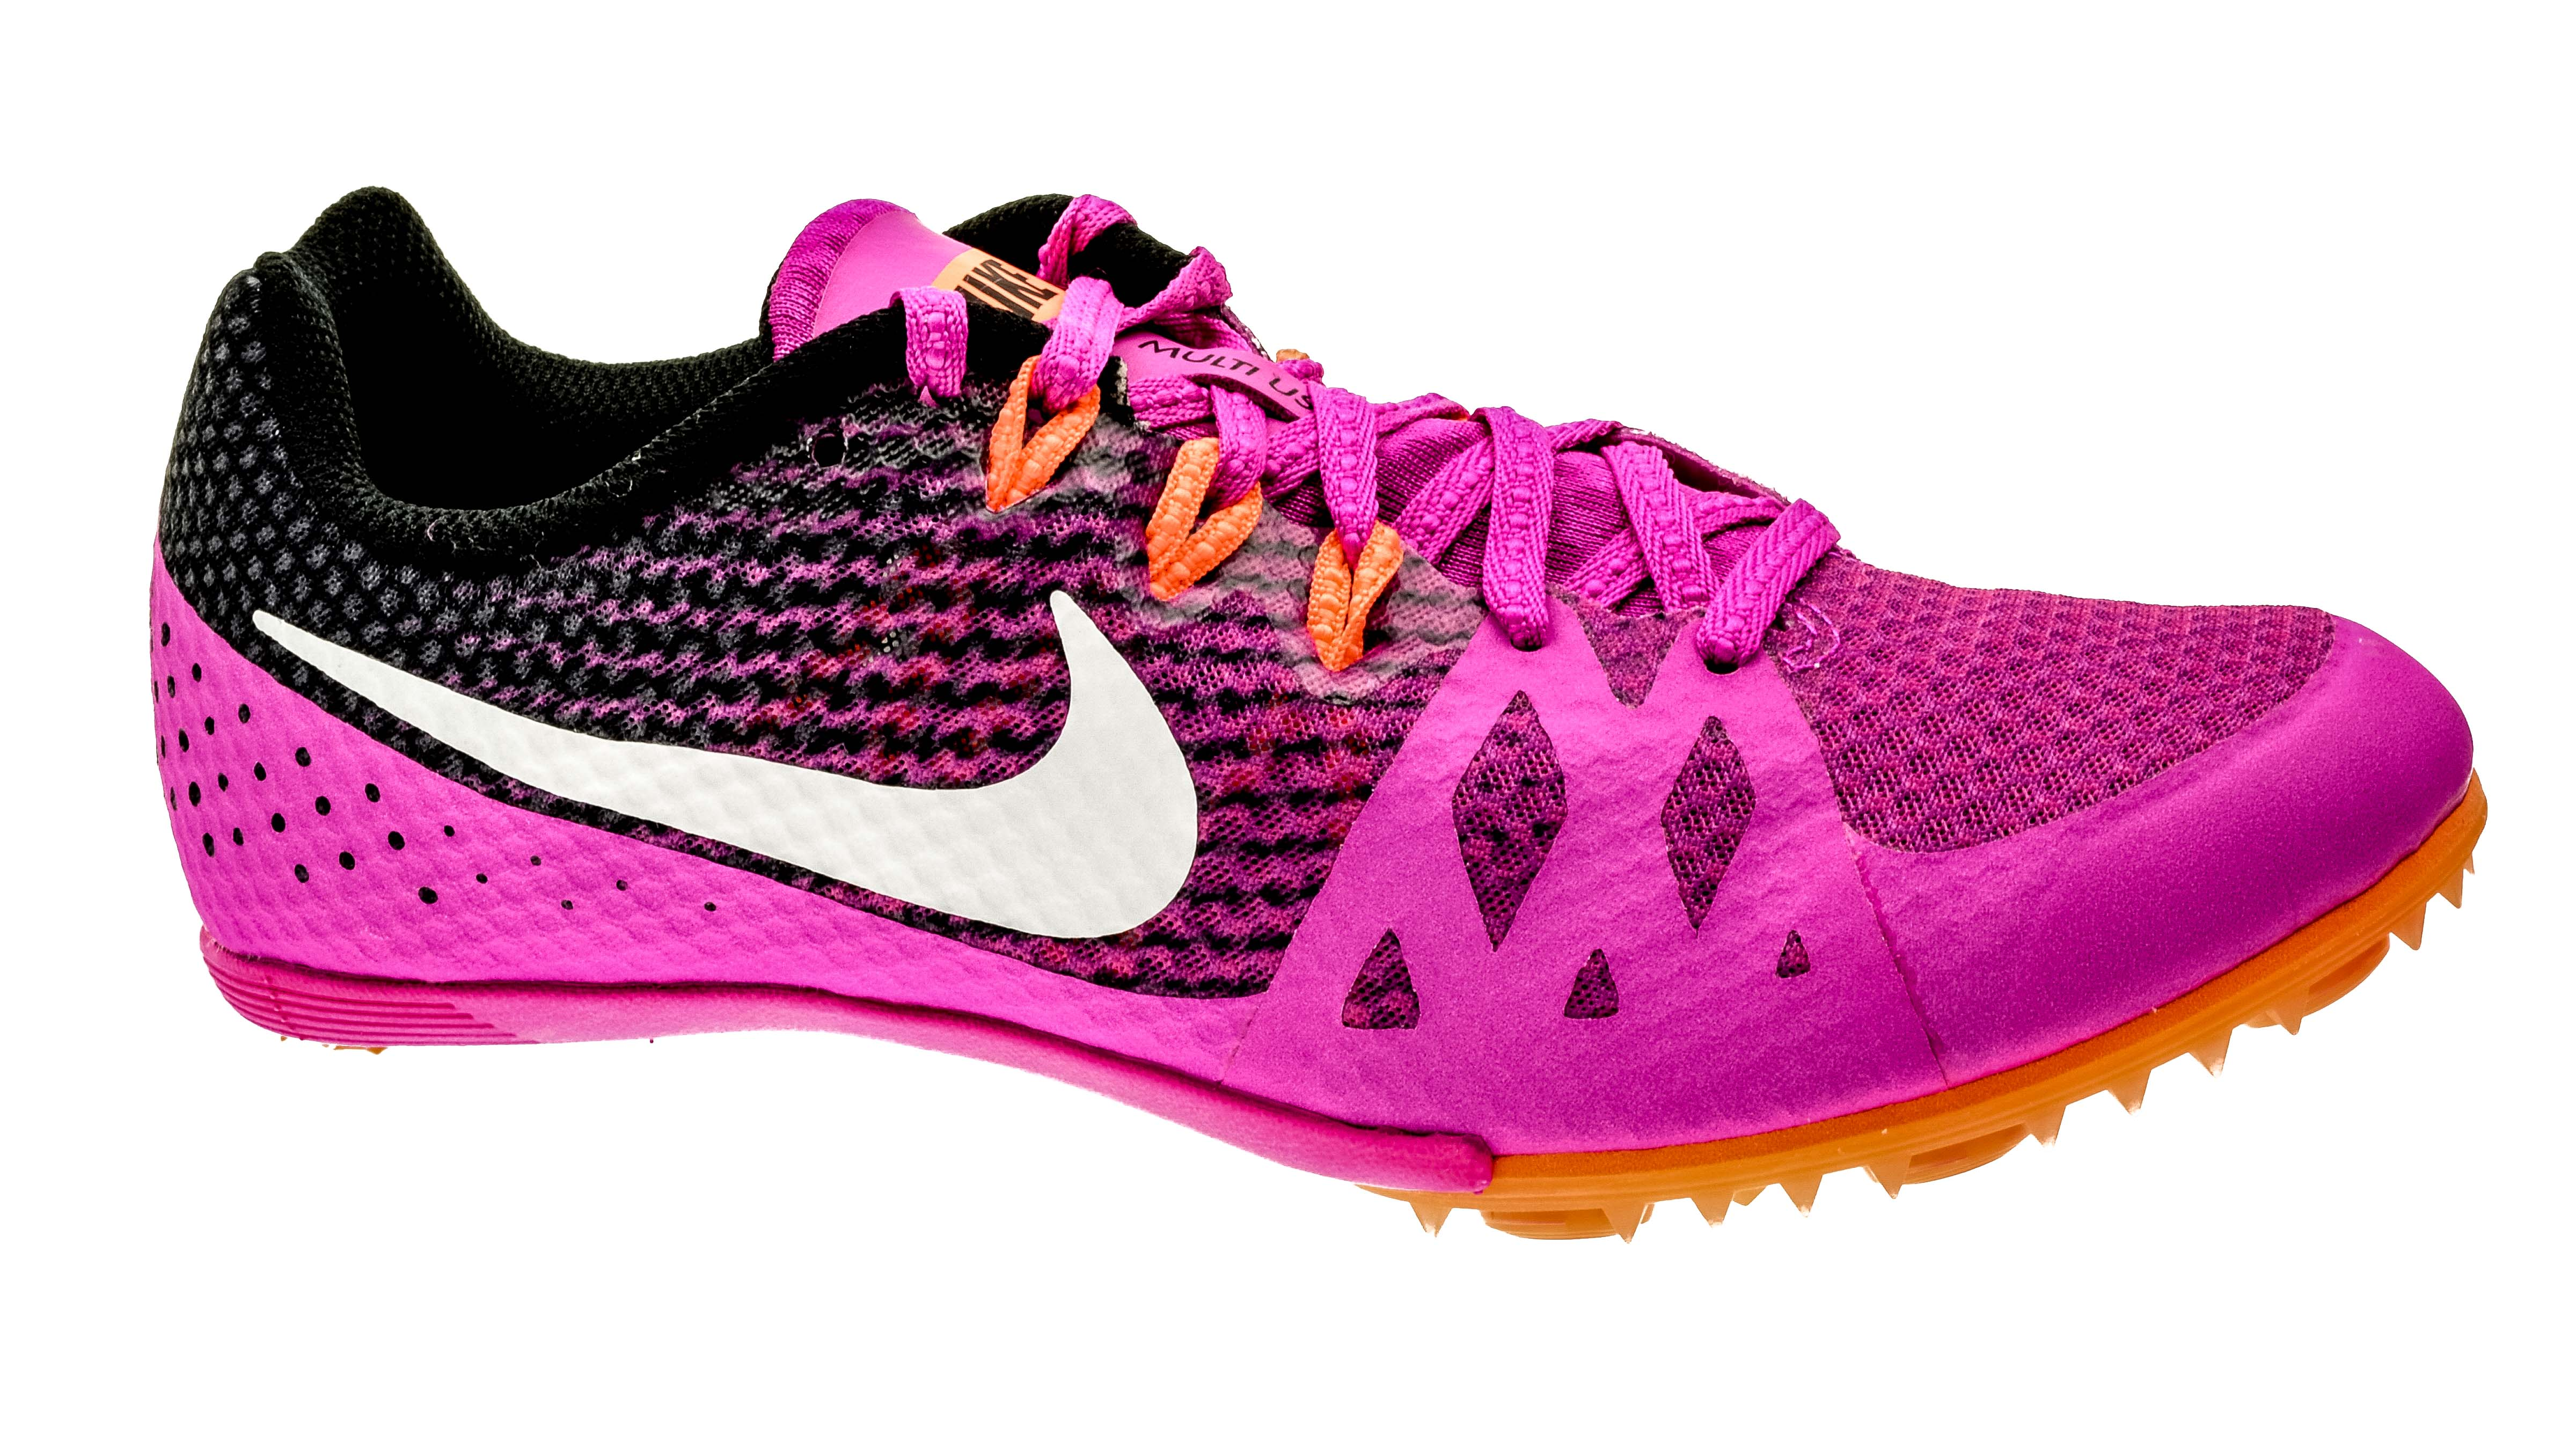 Nike Zoom Rival M8 spikes fire-pink